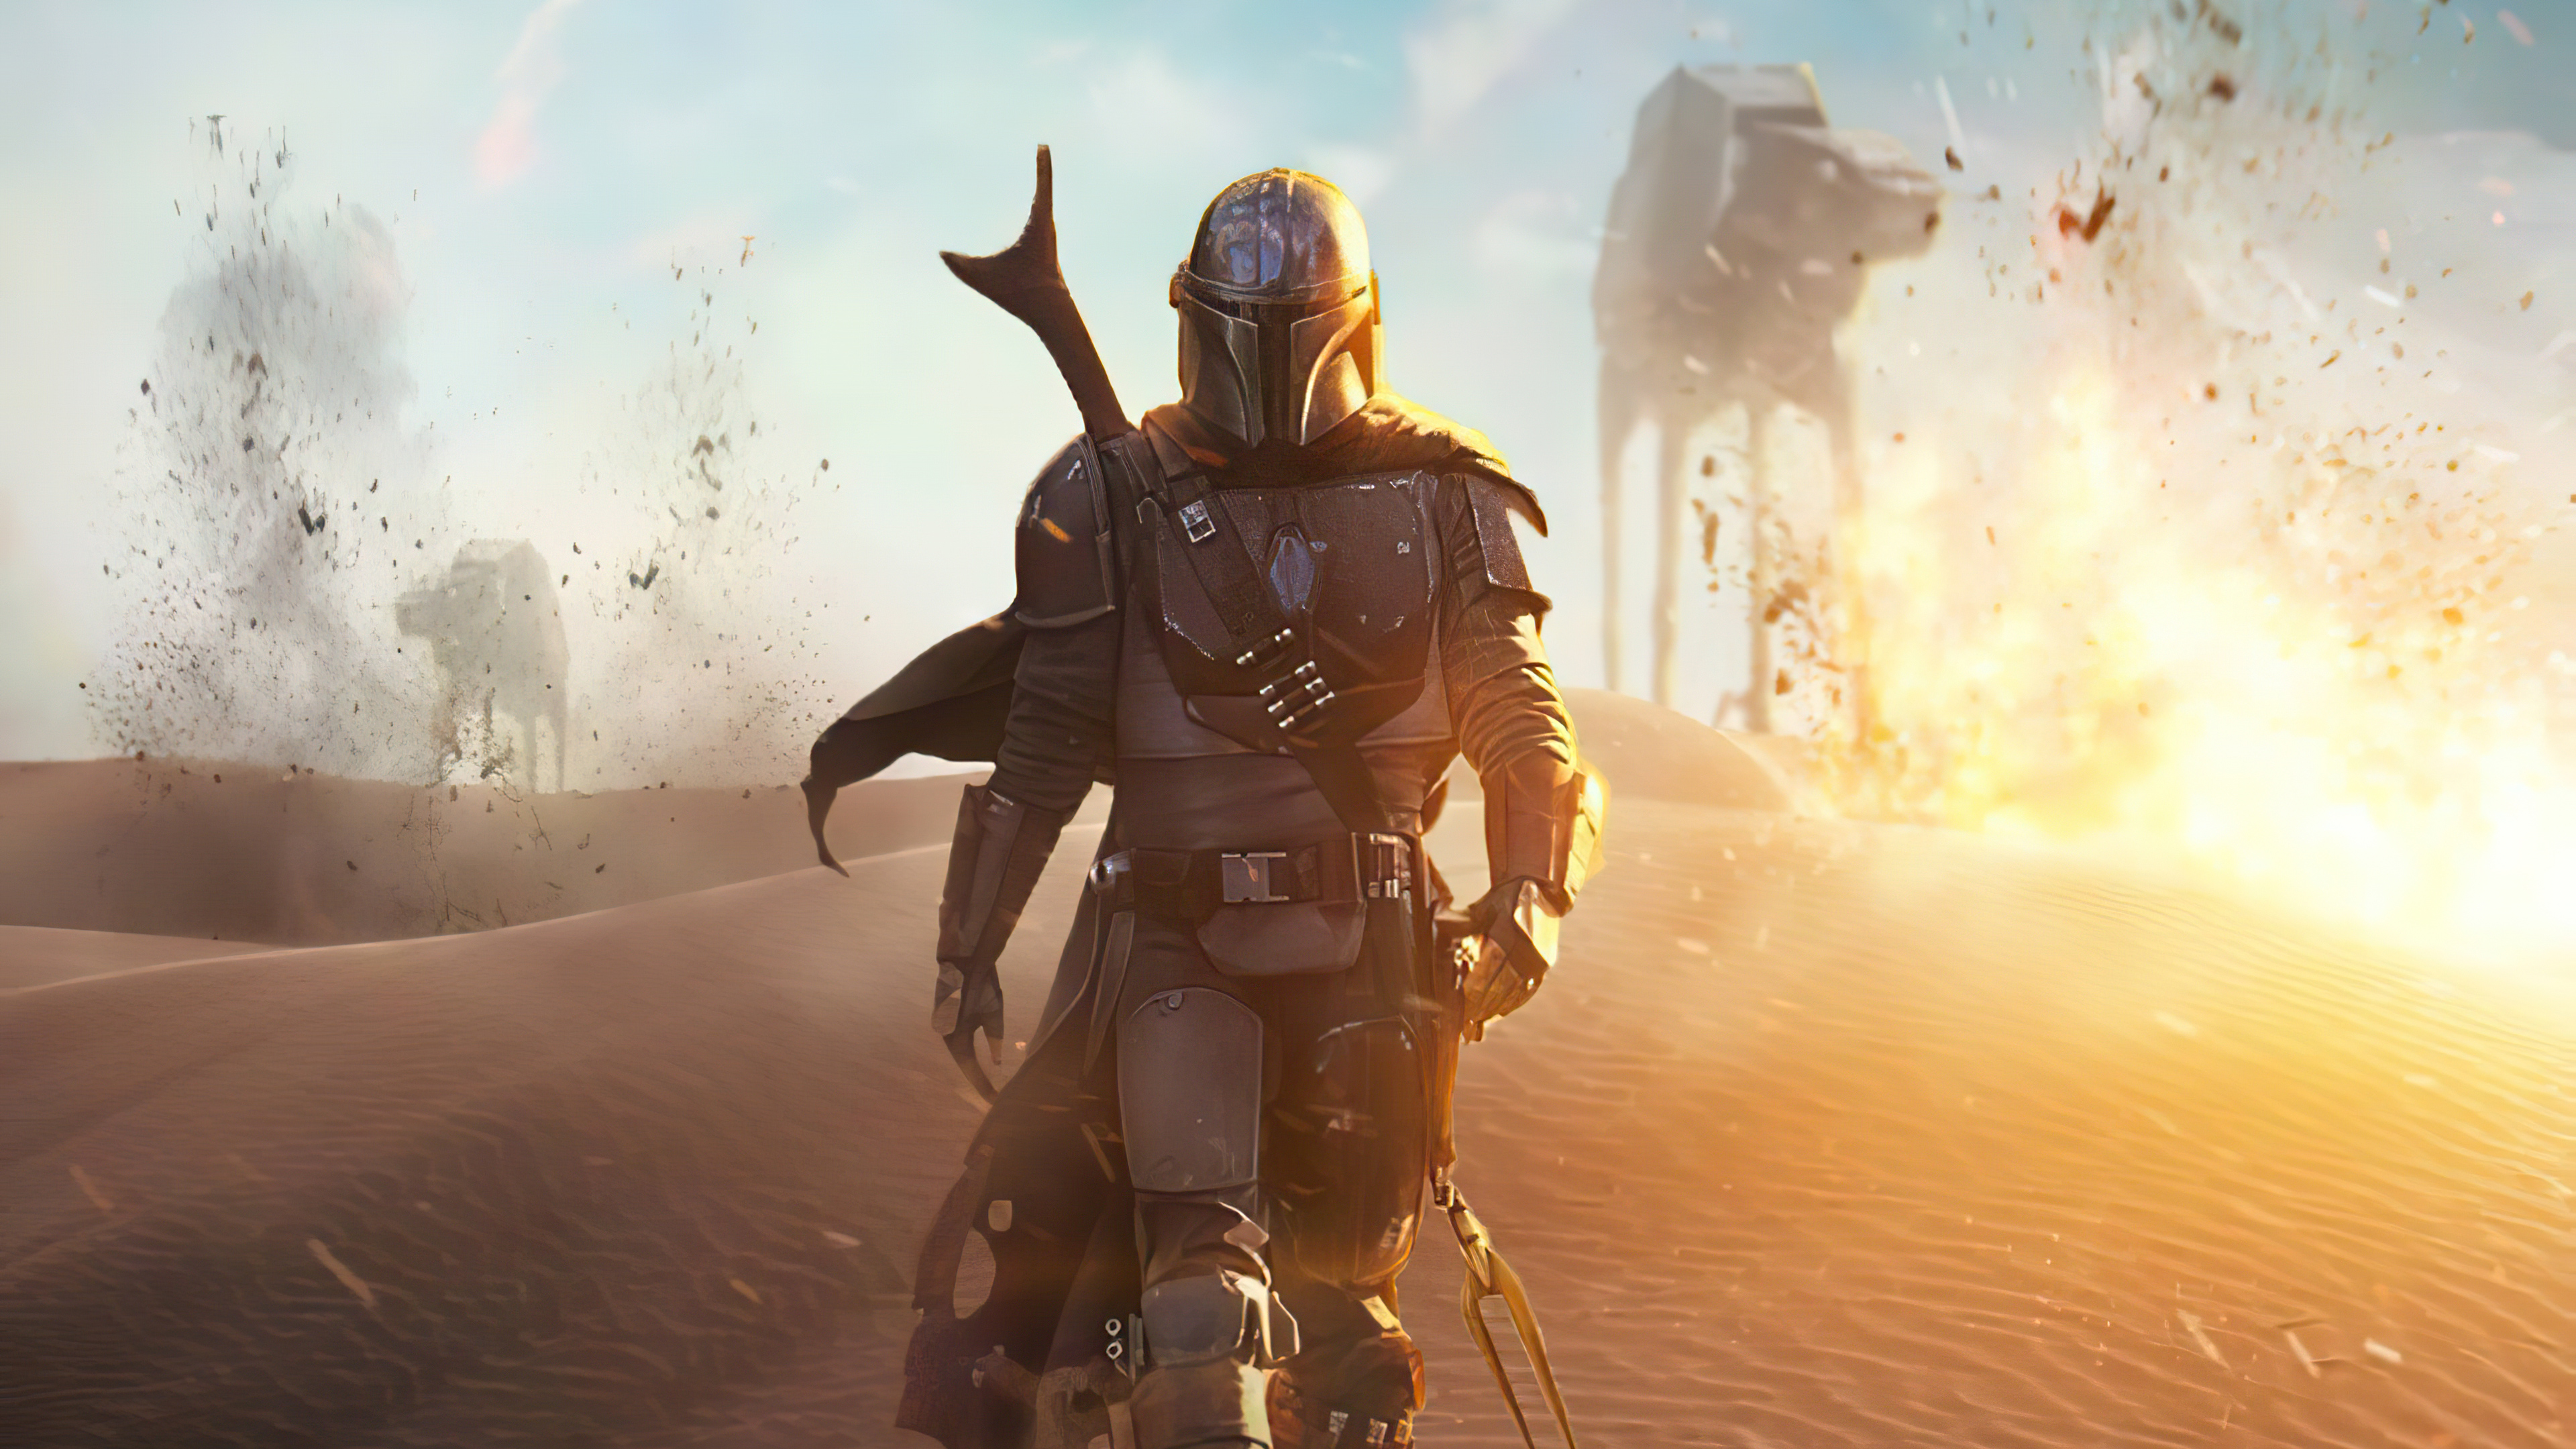 The Mandalorian 4k Artwork 2020 Hd Tv Shows 4k Wallpapers Images Backgrounds Photos And Pictures